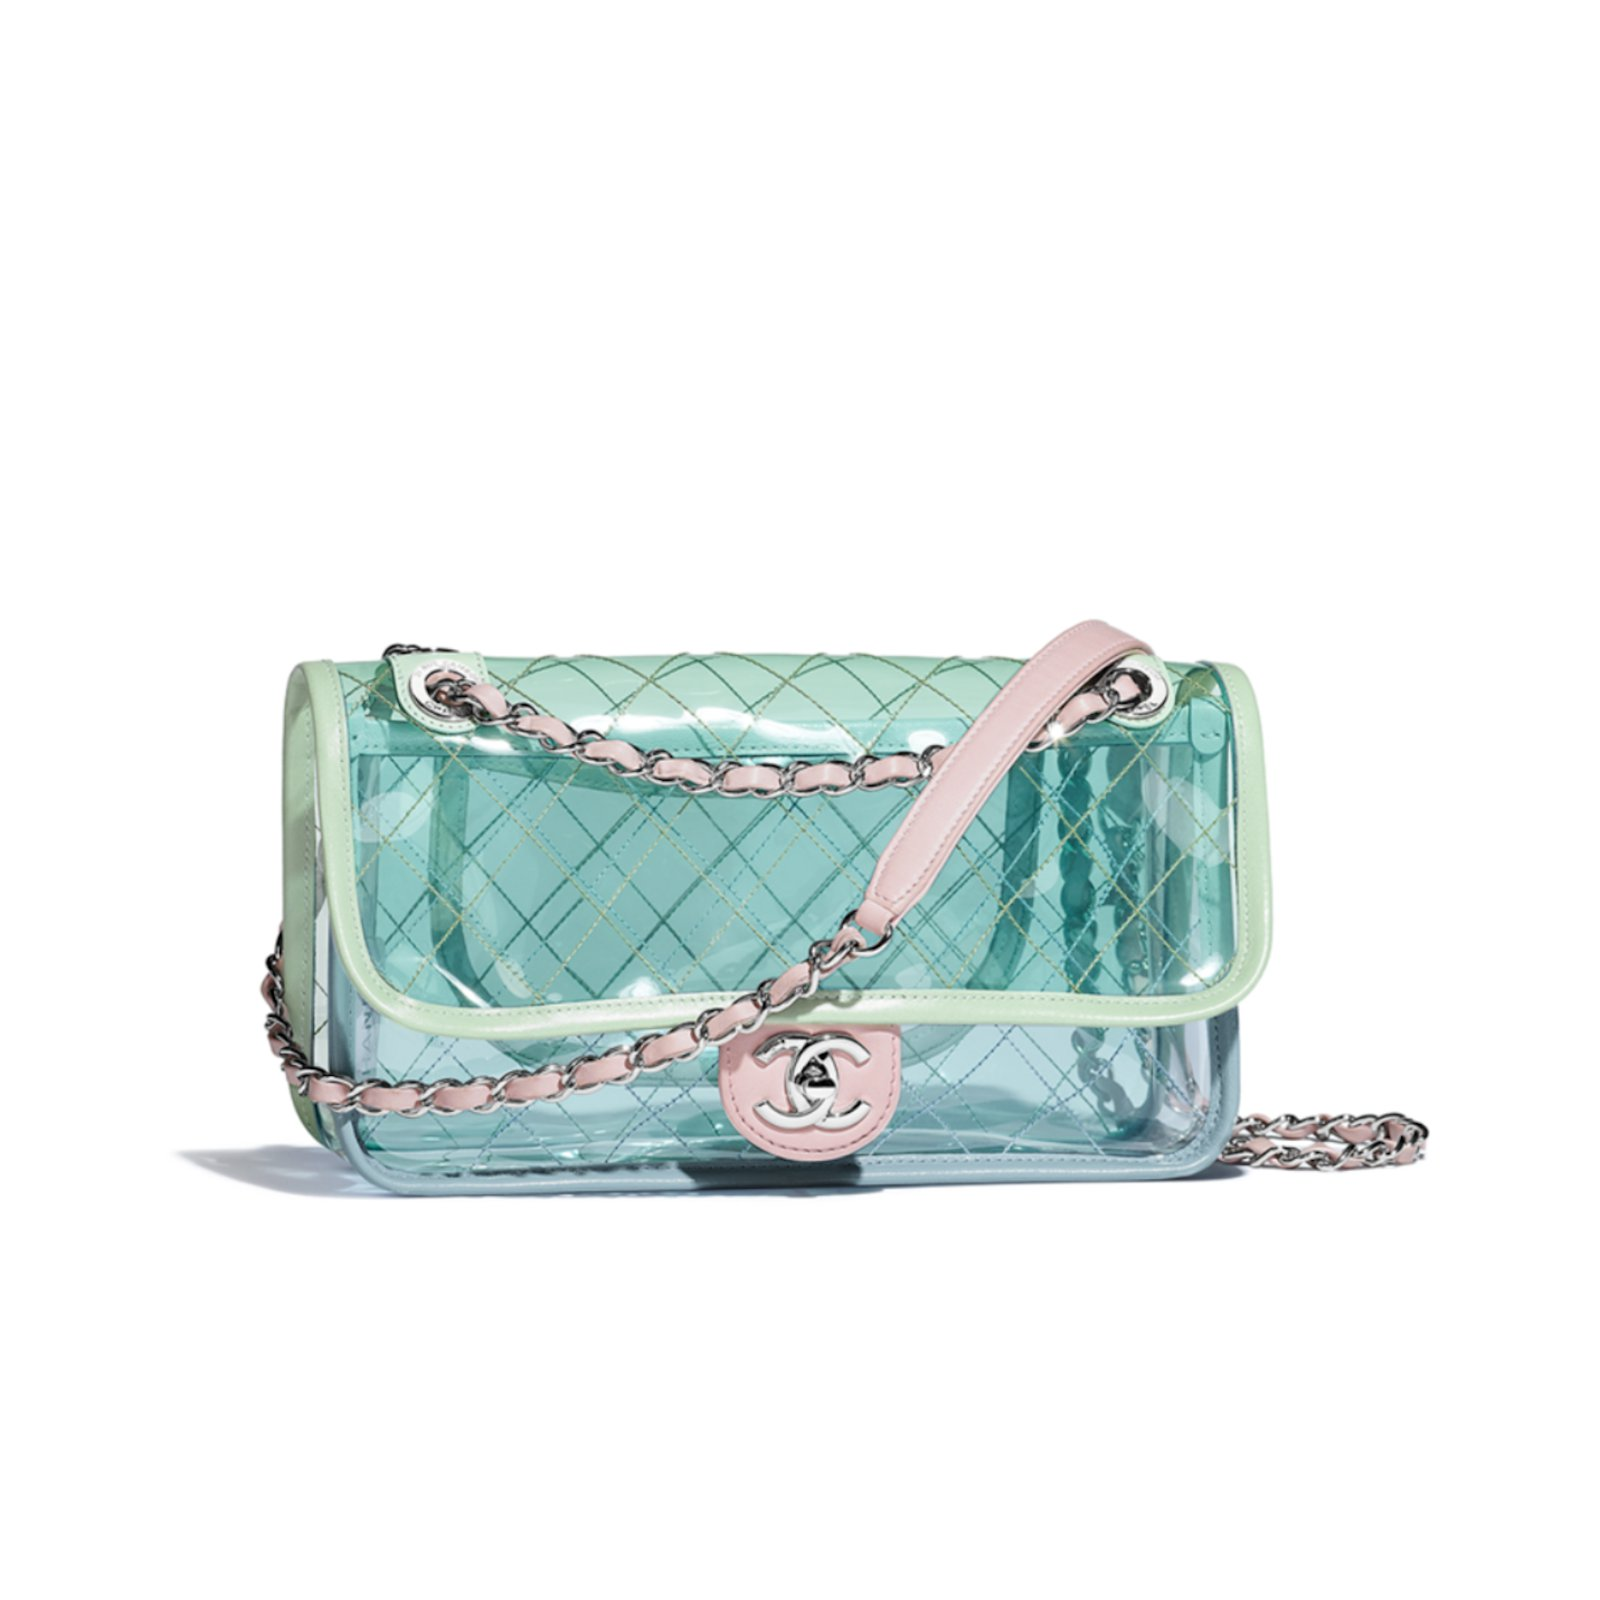 76b0d5443bc0a Chanel Runway Quilted Single Flap with Silver Chain Green Blue Pink PVC Lambskin  Bag Handbags Plastic Multiple colors ref.65207 - Joli Closet